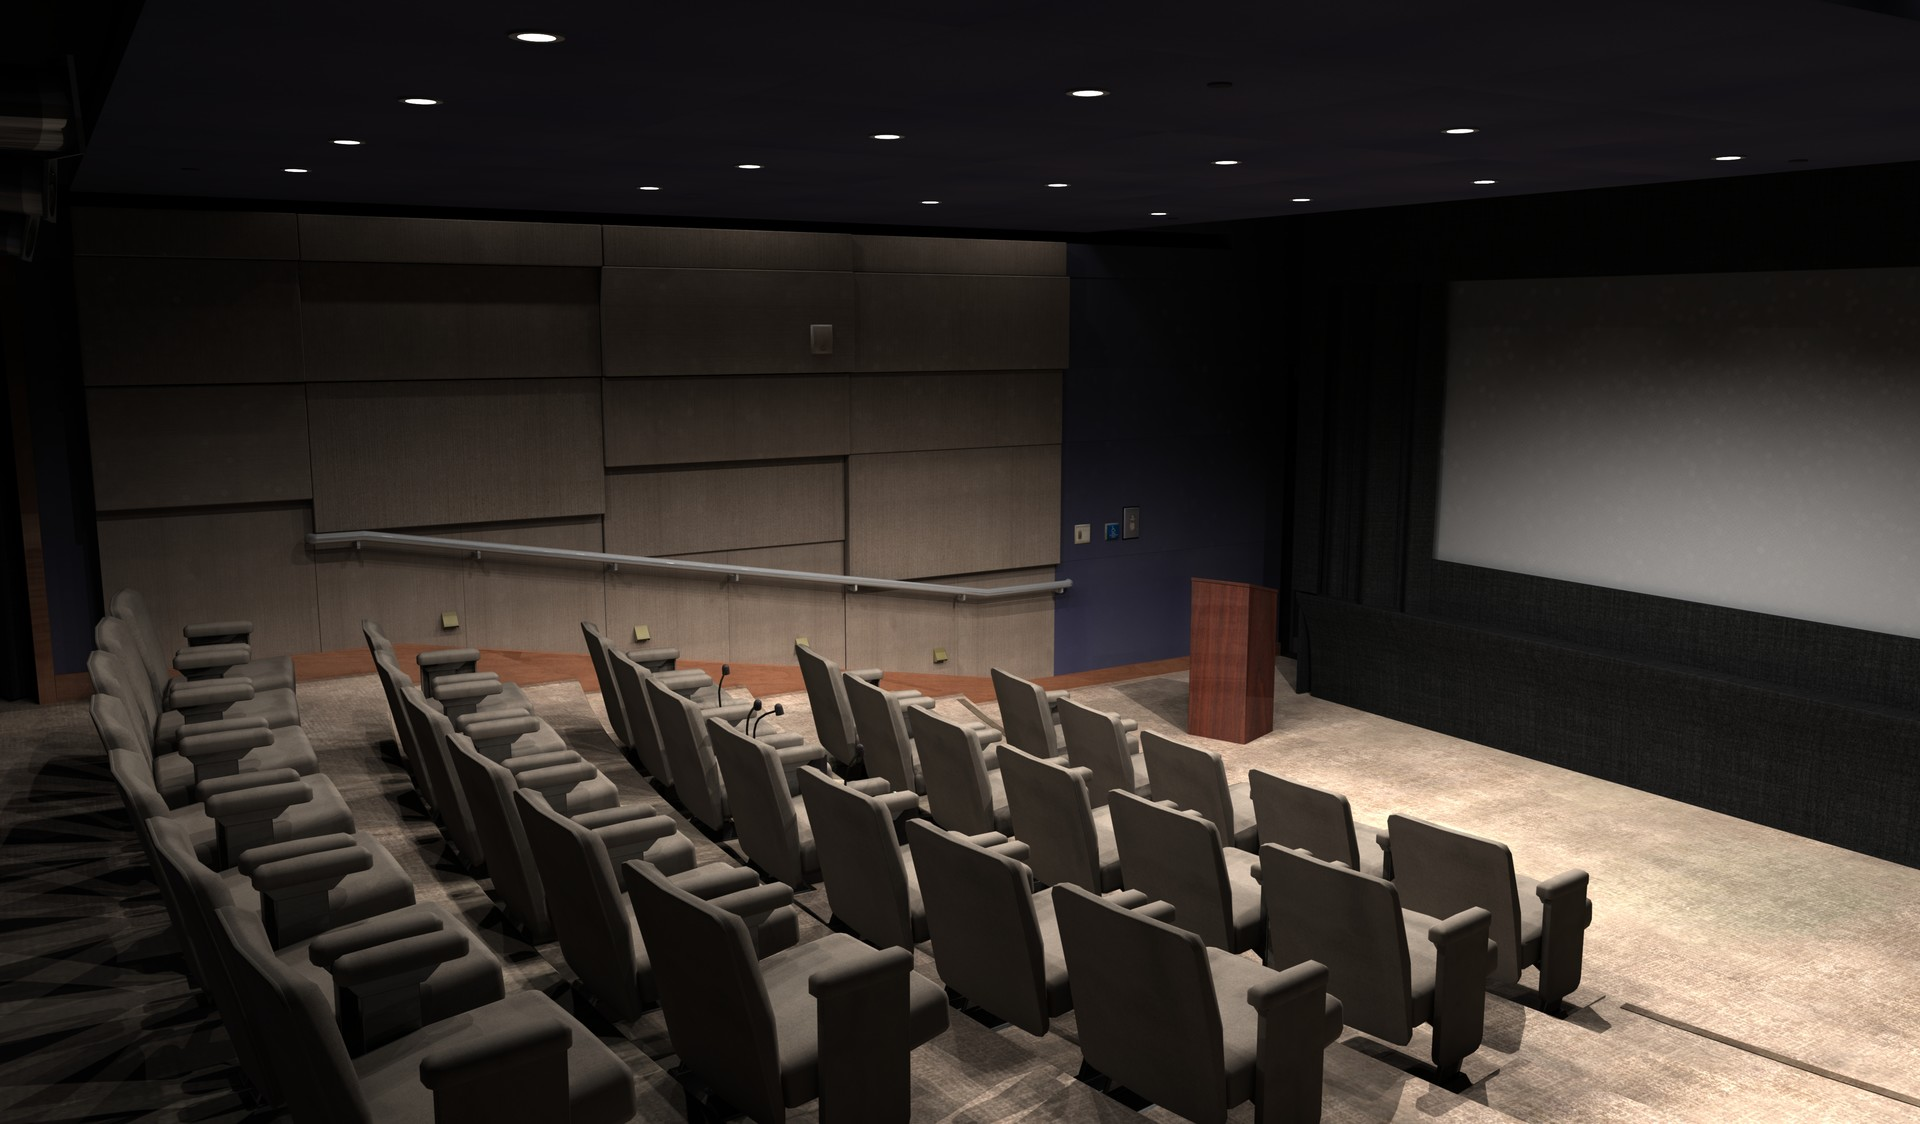 3D Screening Room | Theater (Lighting Condition with no film playing)